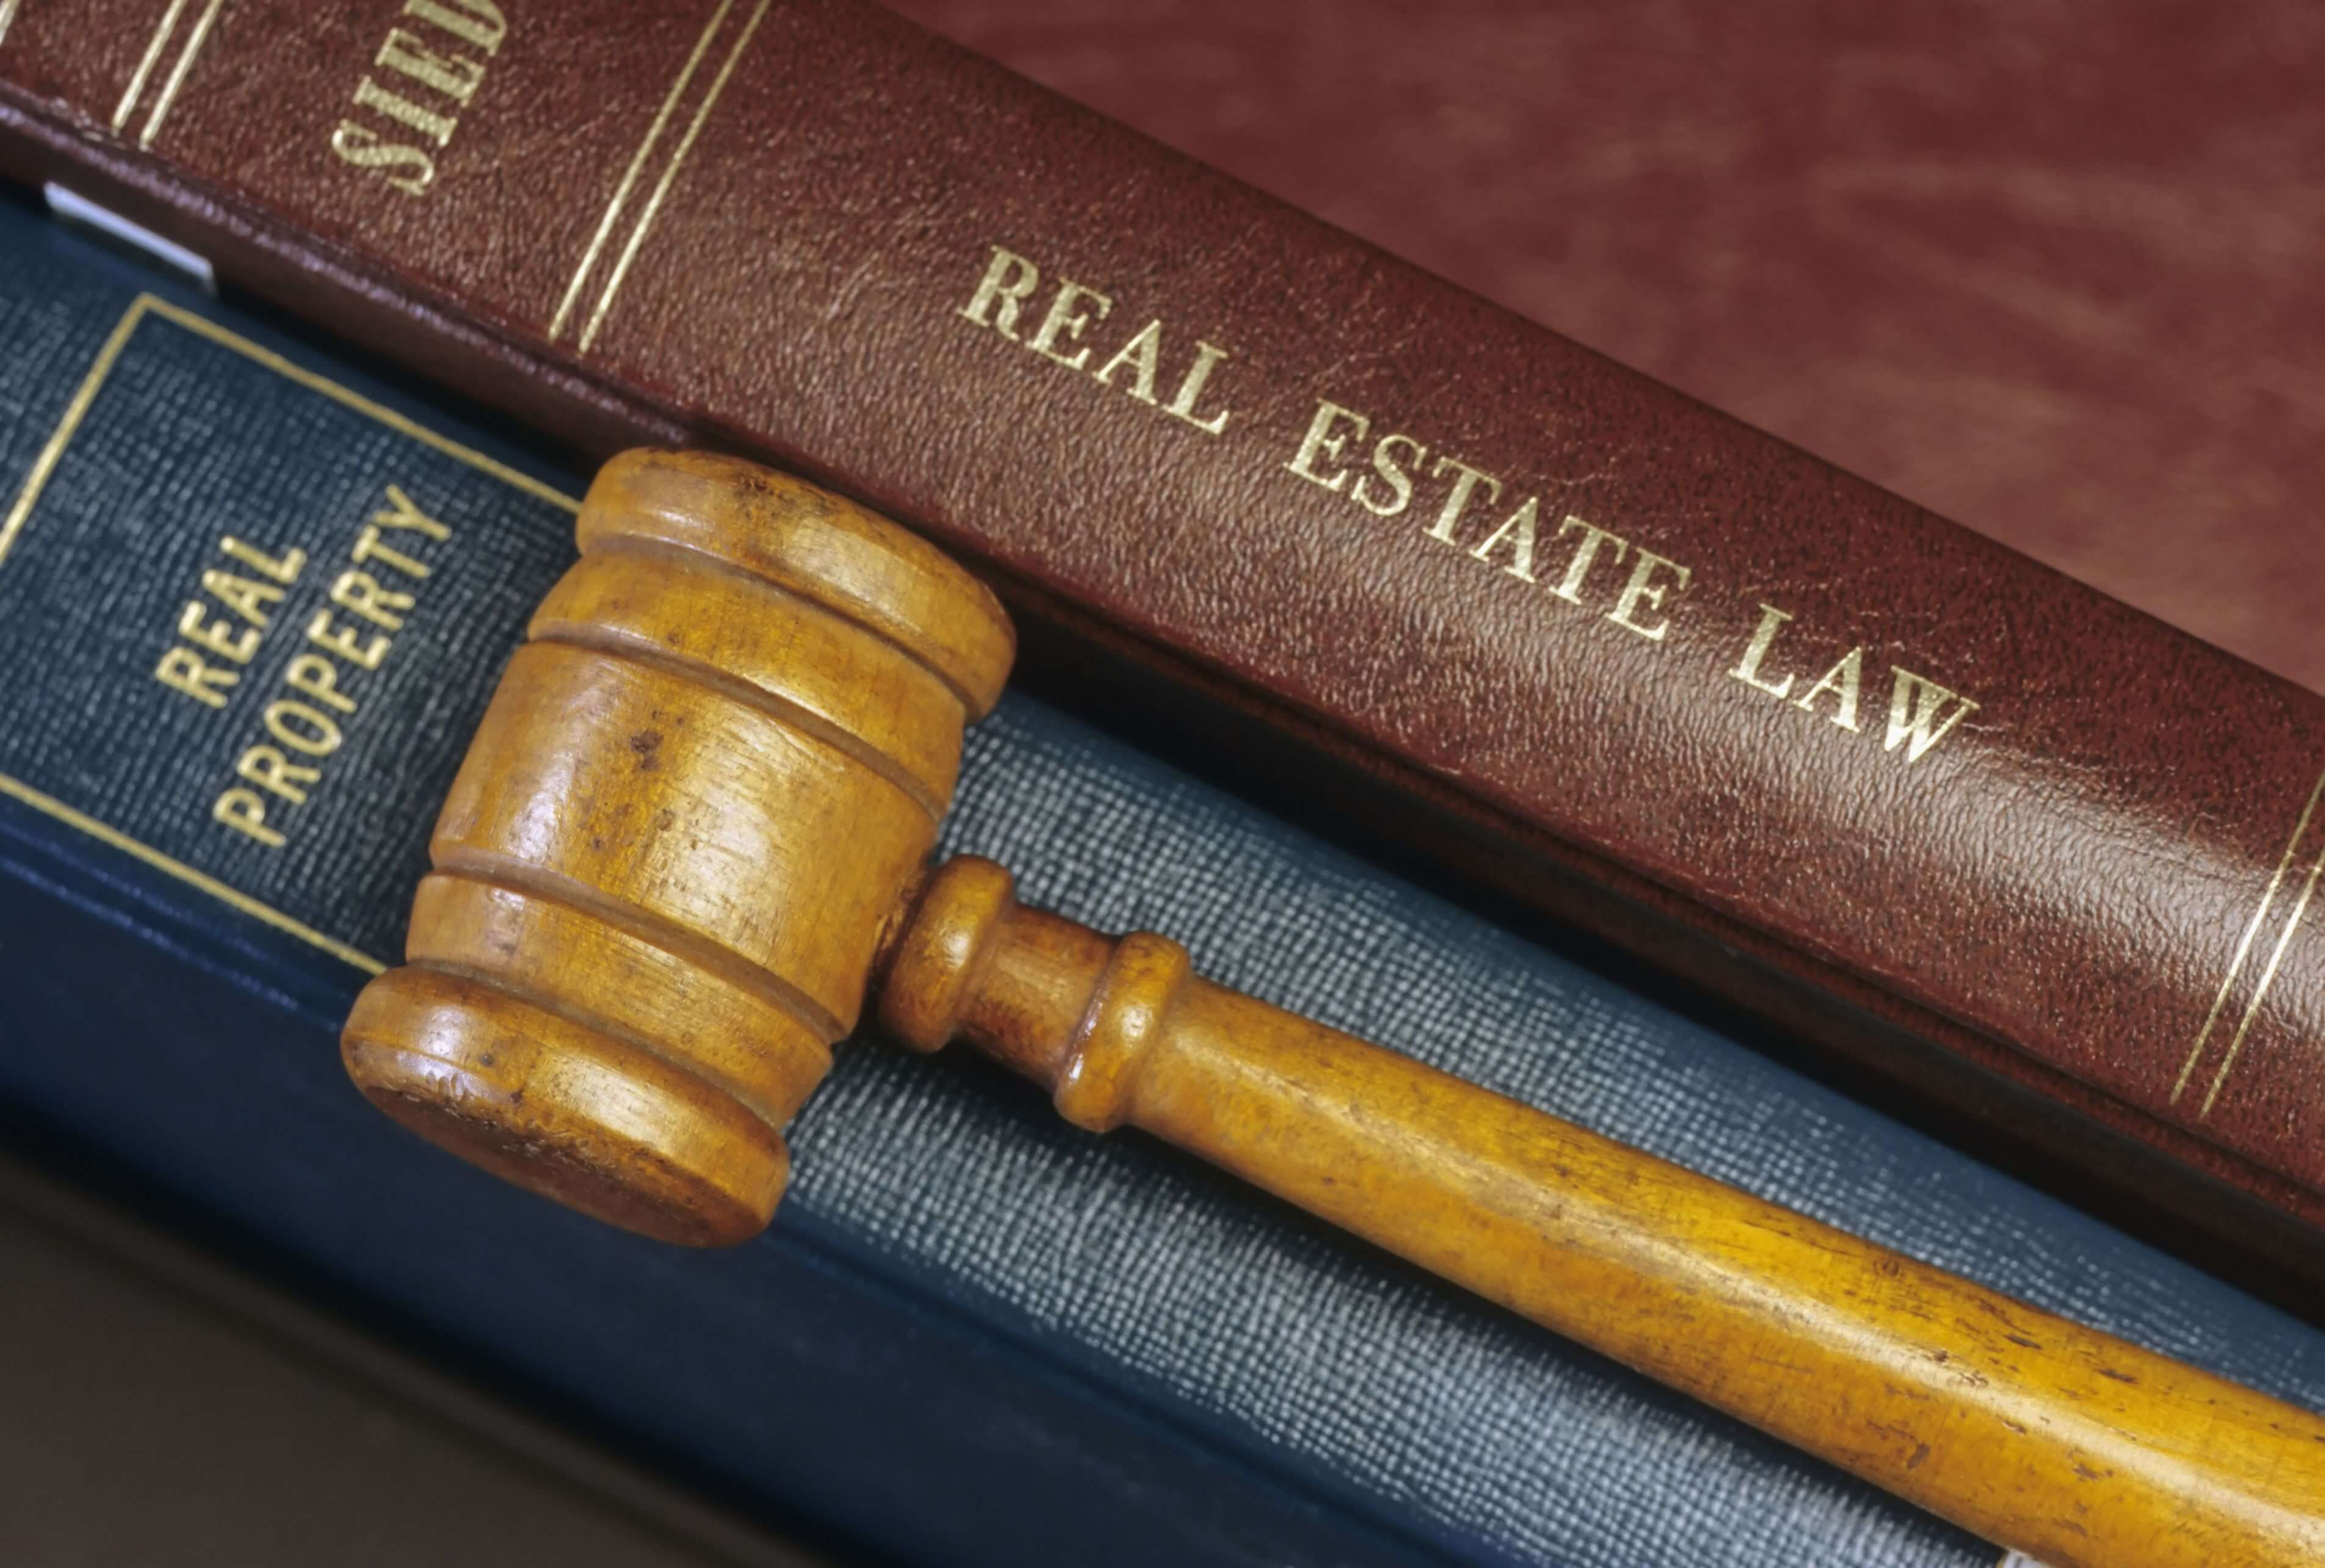 article-3_real-estate-law-books